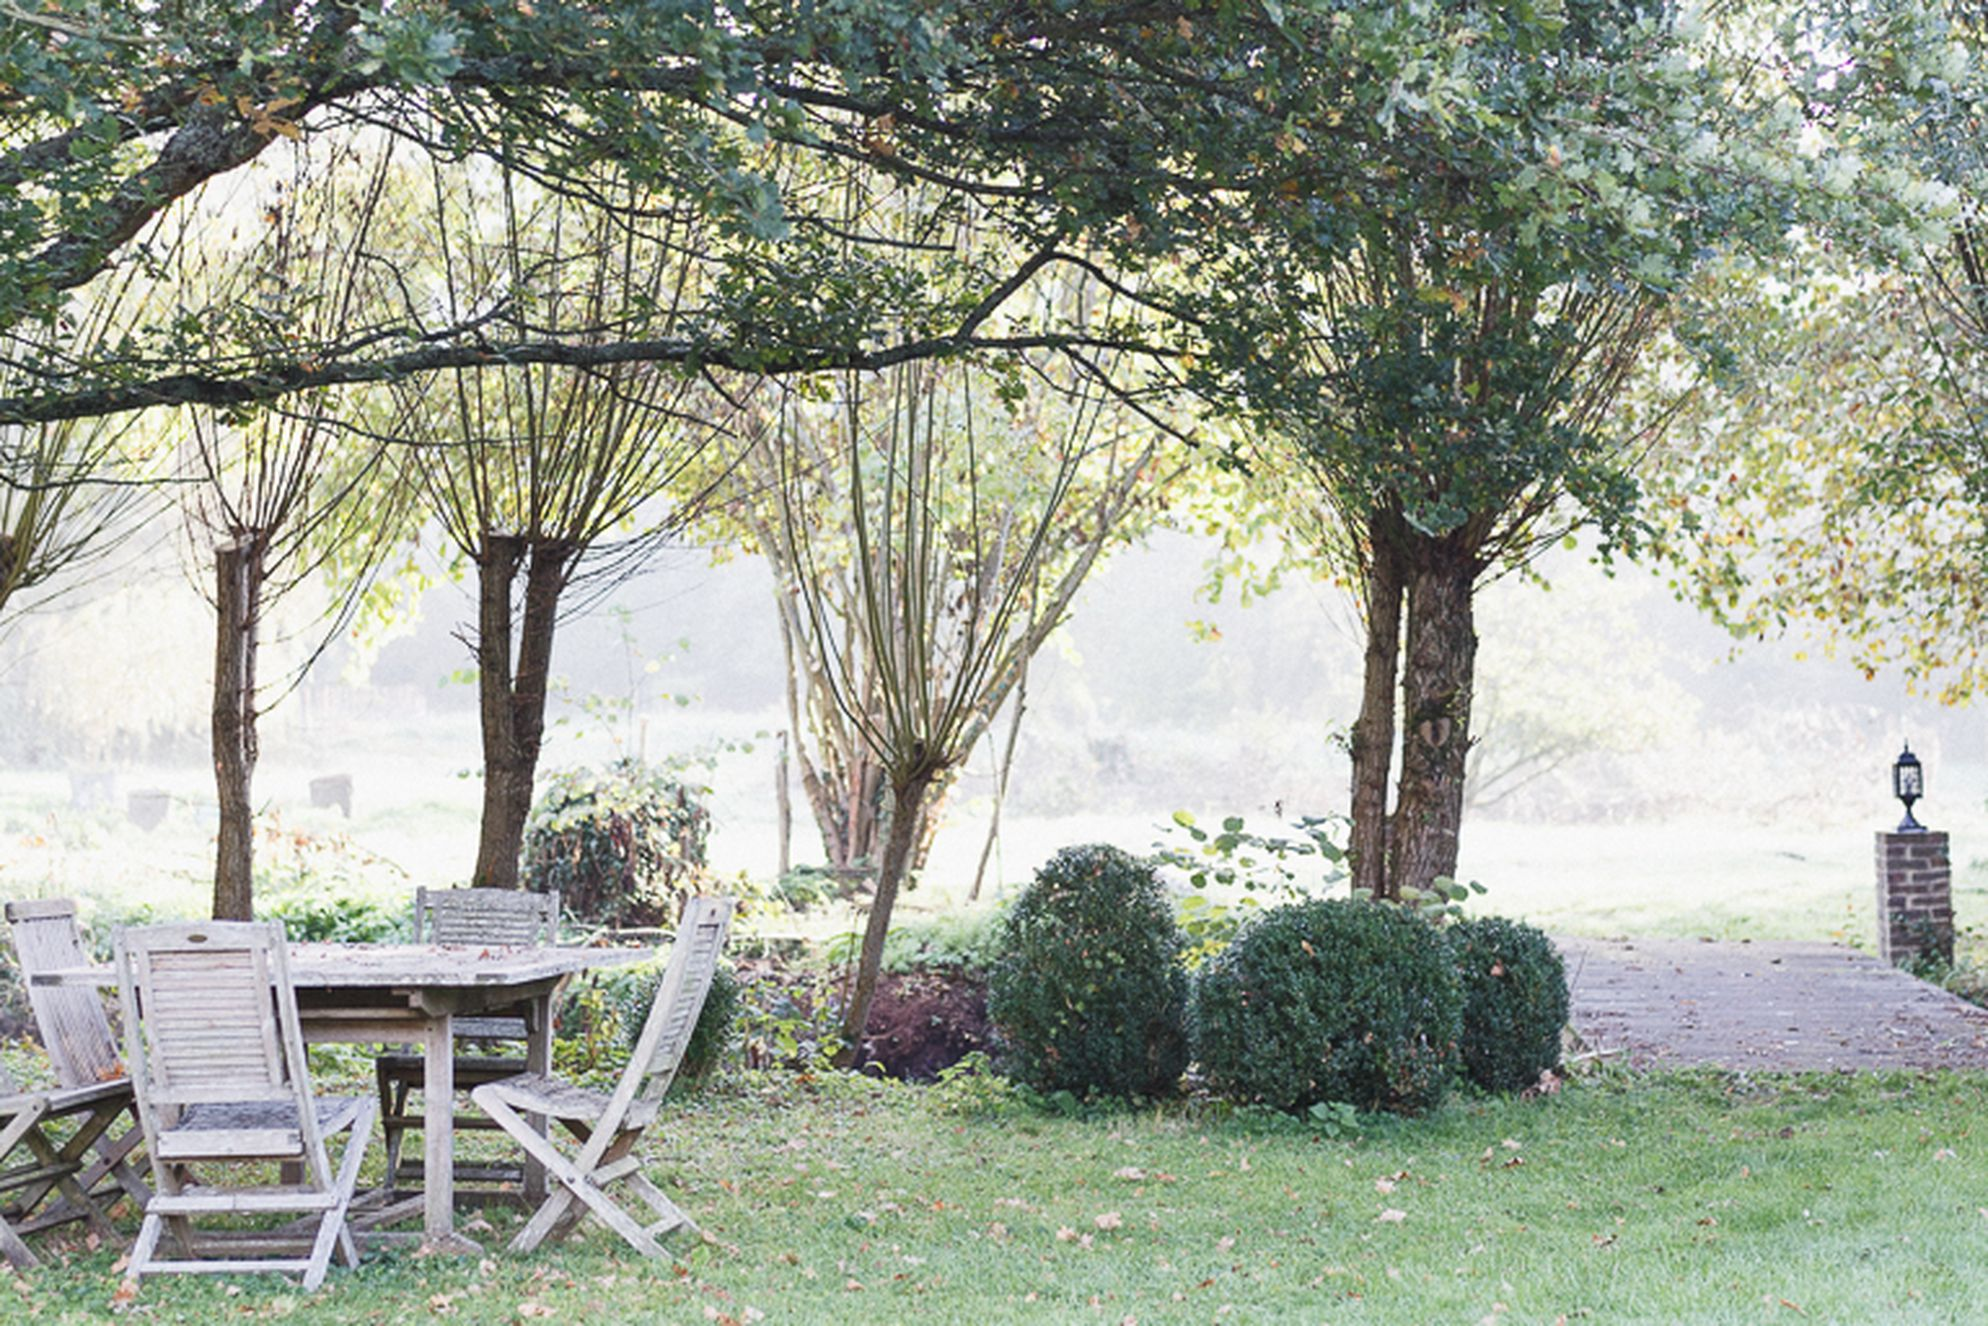 Garden with outside table and chairs amongst the trees